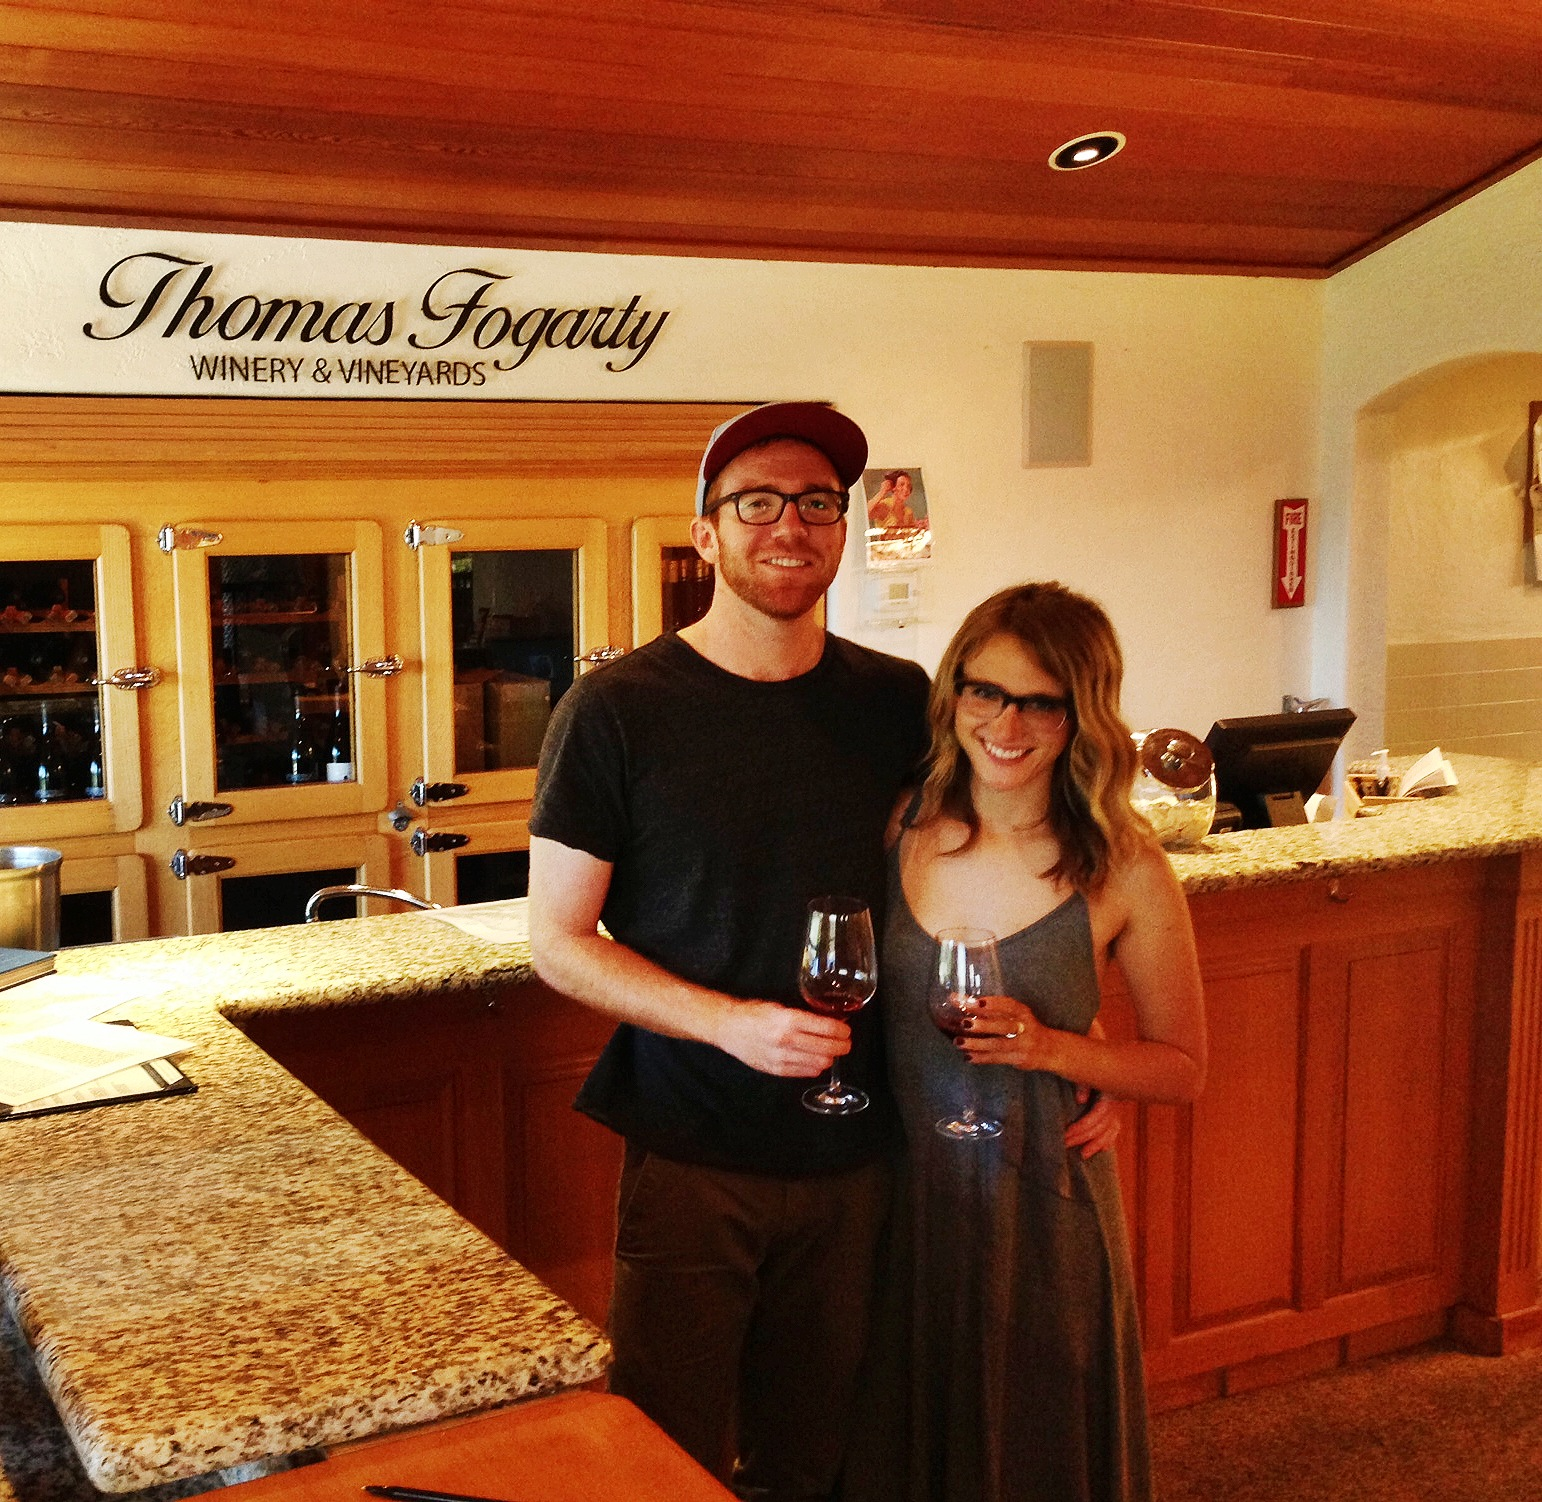 A little pit stop to Thomas Fogarty Winery this weekend.